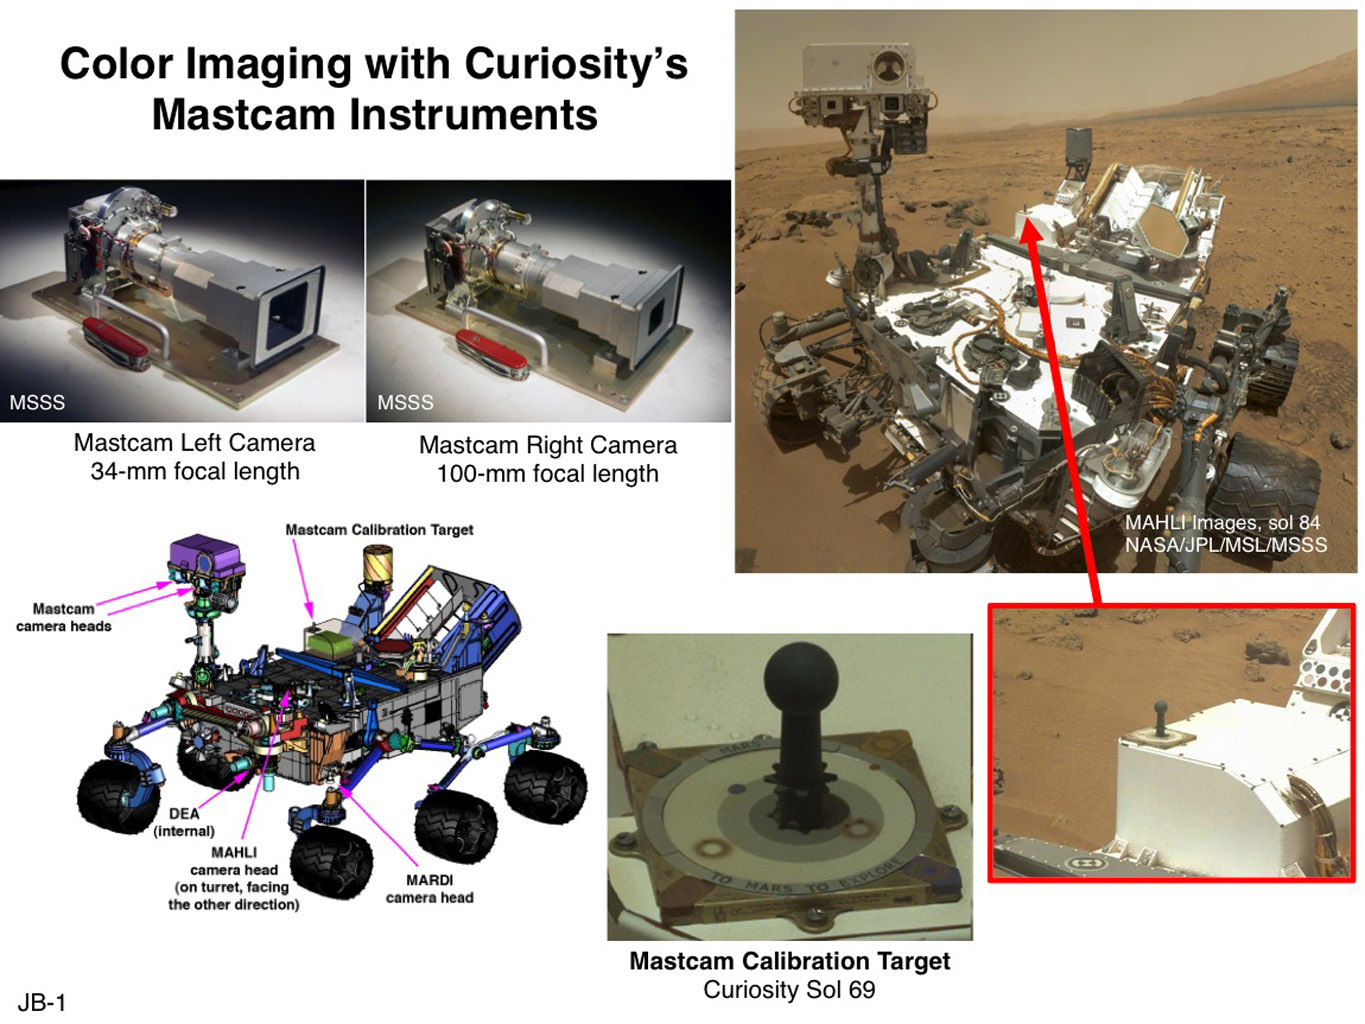 This set of images illustrates the twin cameras of the Mastcam instrument on NASA's Curiosity Mars rover (upper left), the Mastcam calibration target (lower center), and the locations of the cameras and target on the rover.